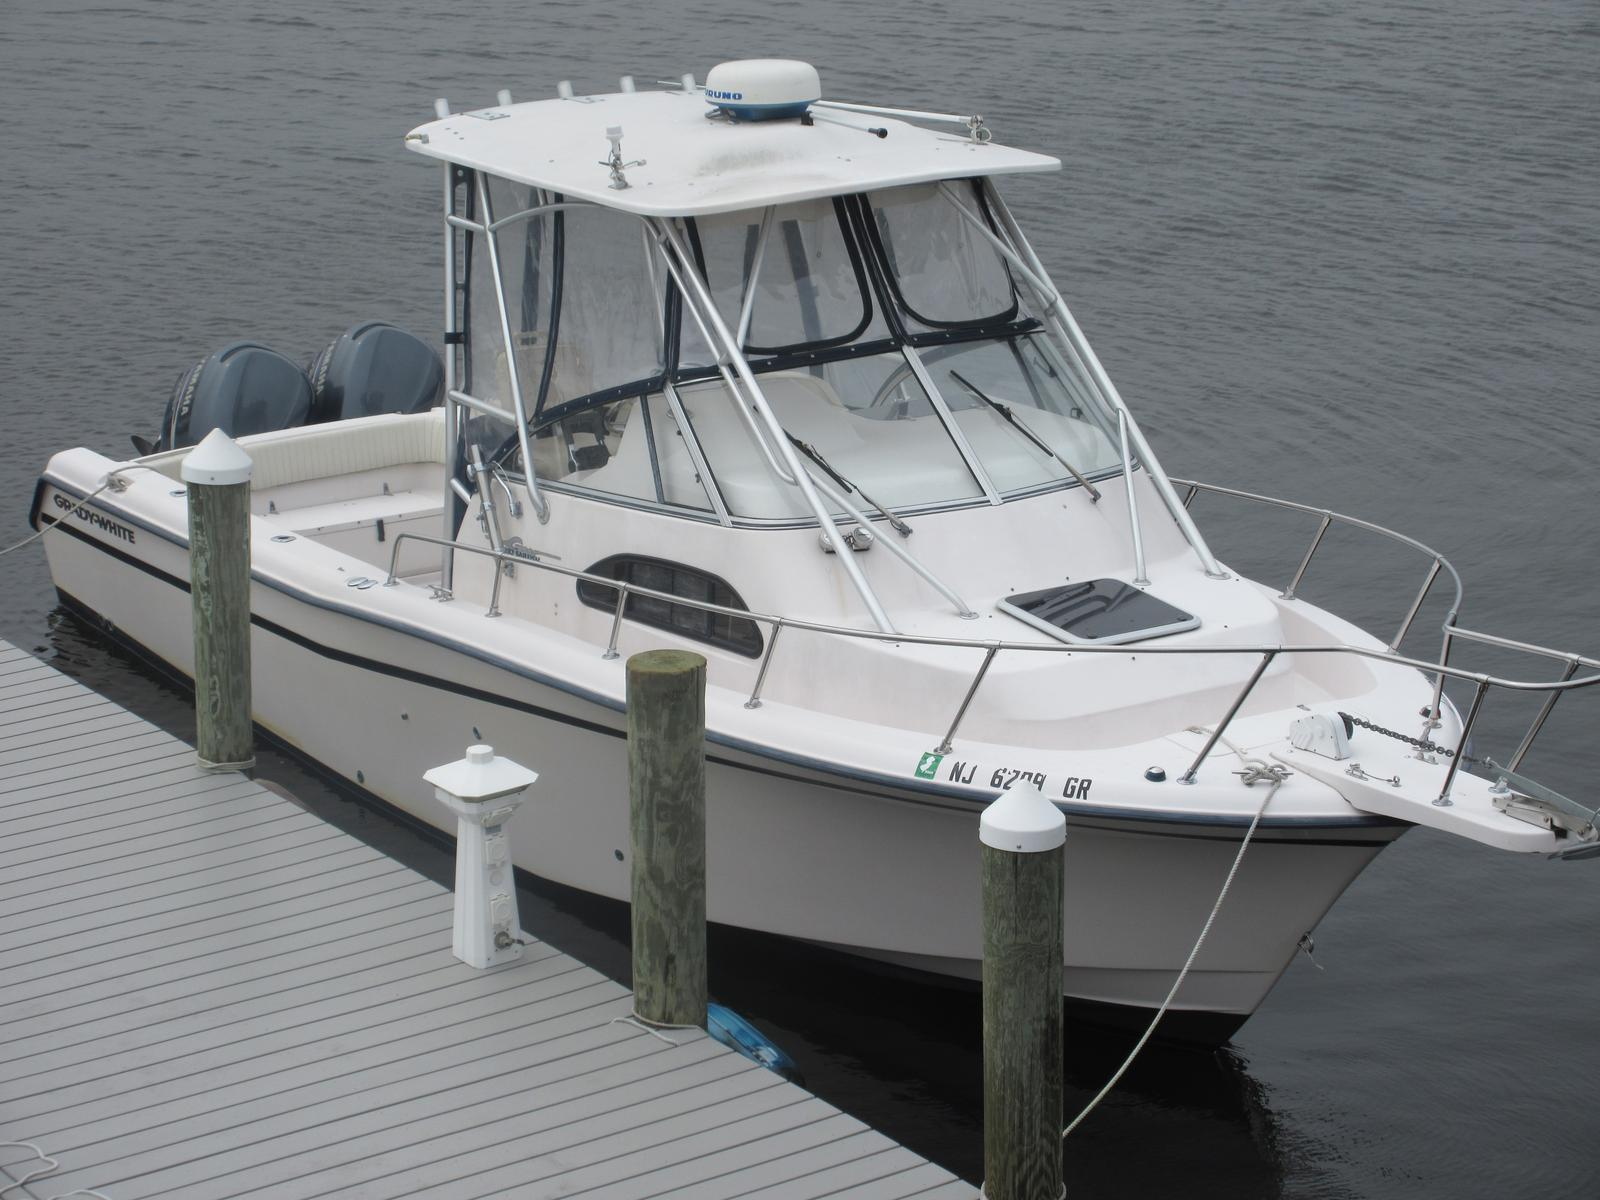 2002 Grady-White Sailfish 282 for sale in Brick, NJ  Comstock Yacht